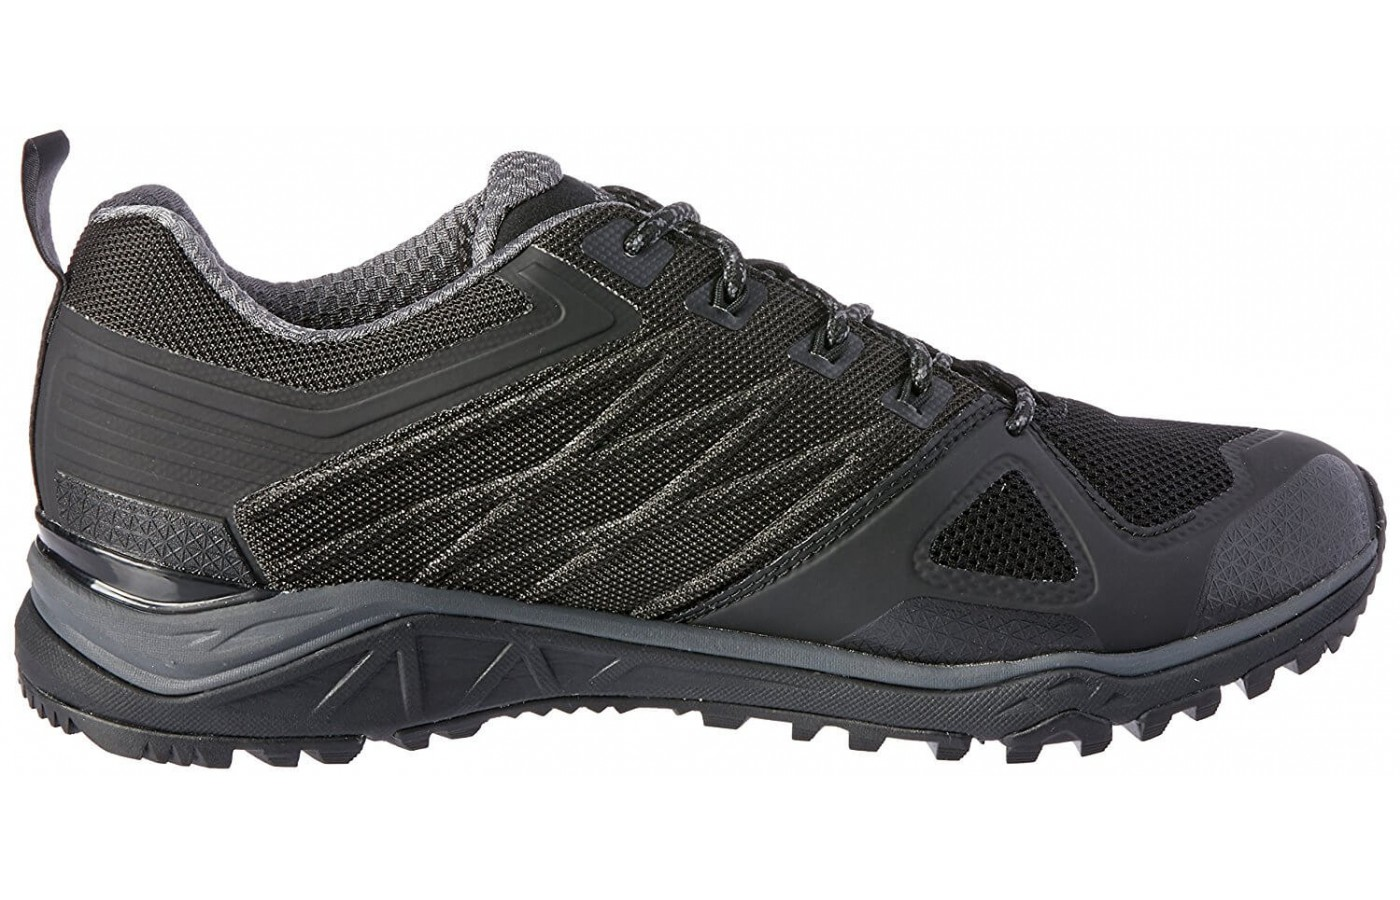 b23163111 The North Face Ultra Fastpack II GTX